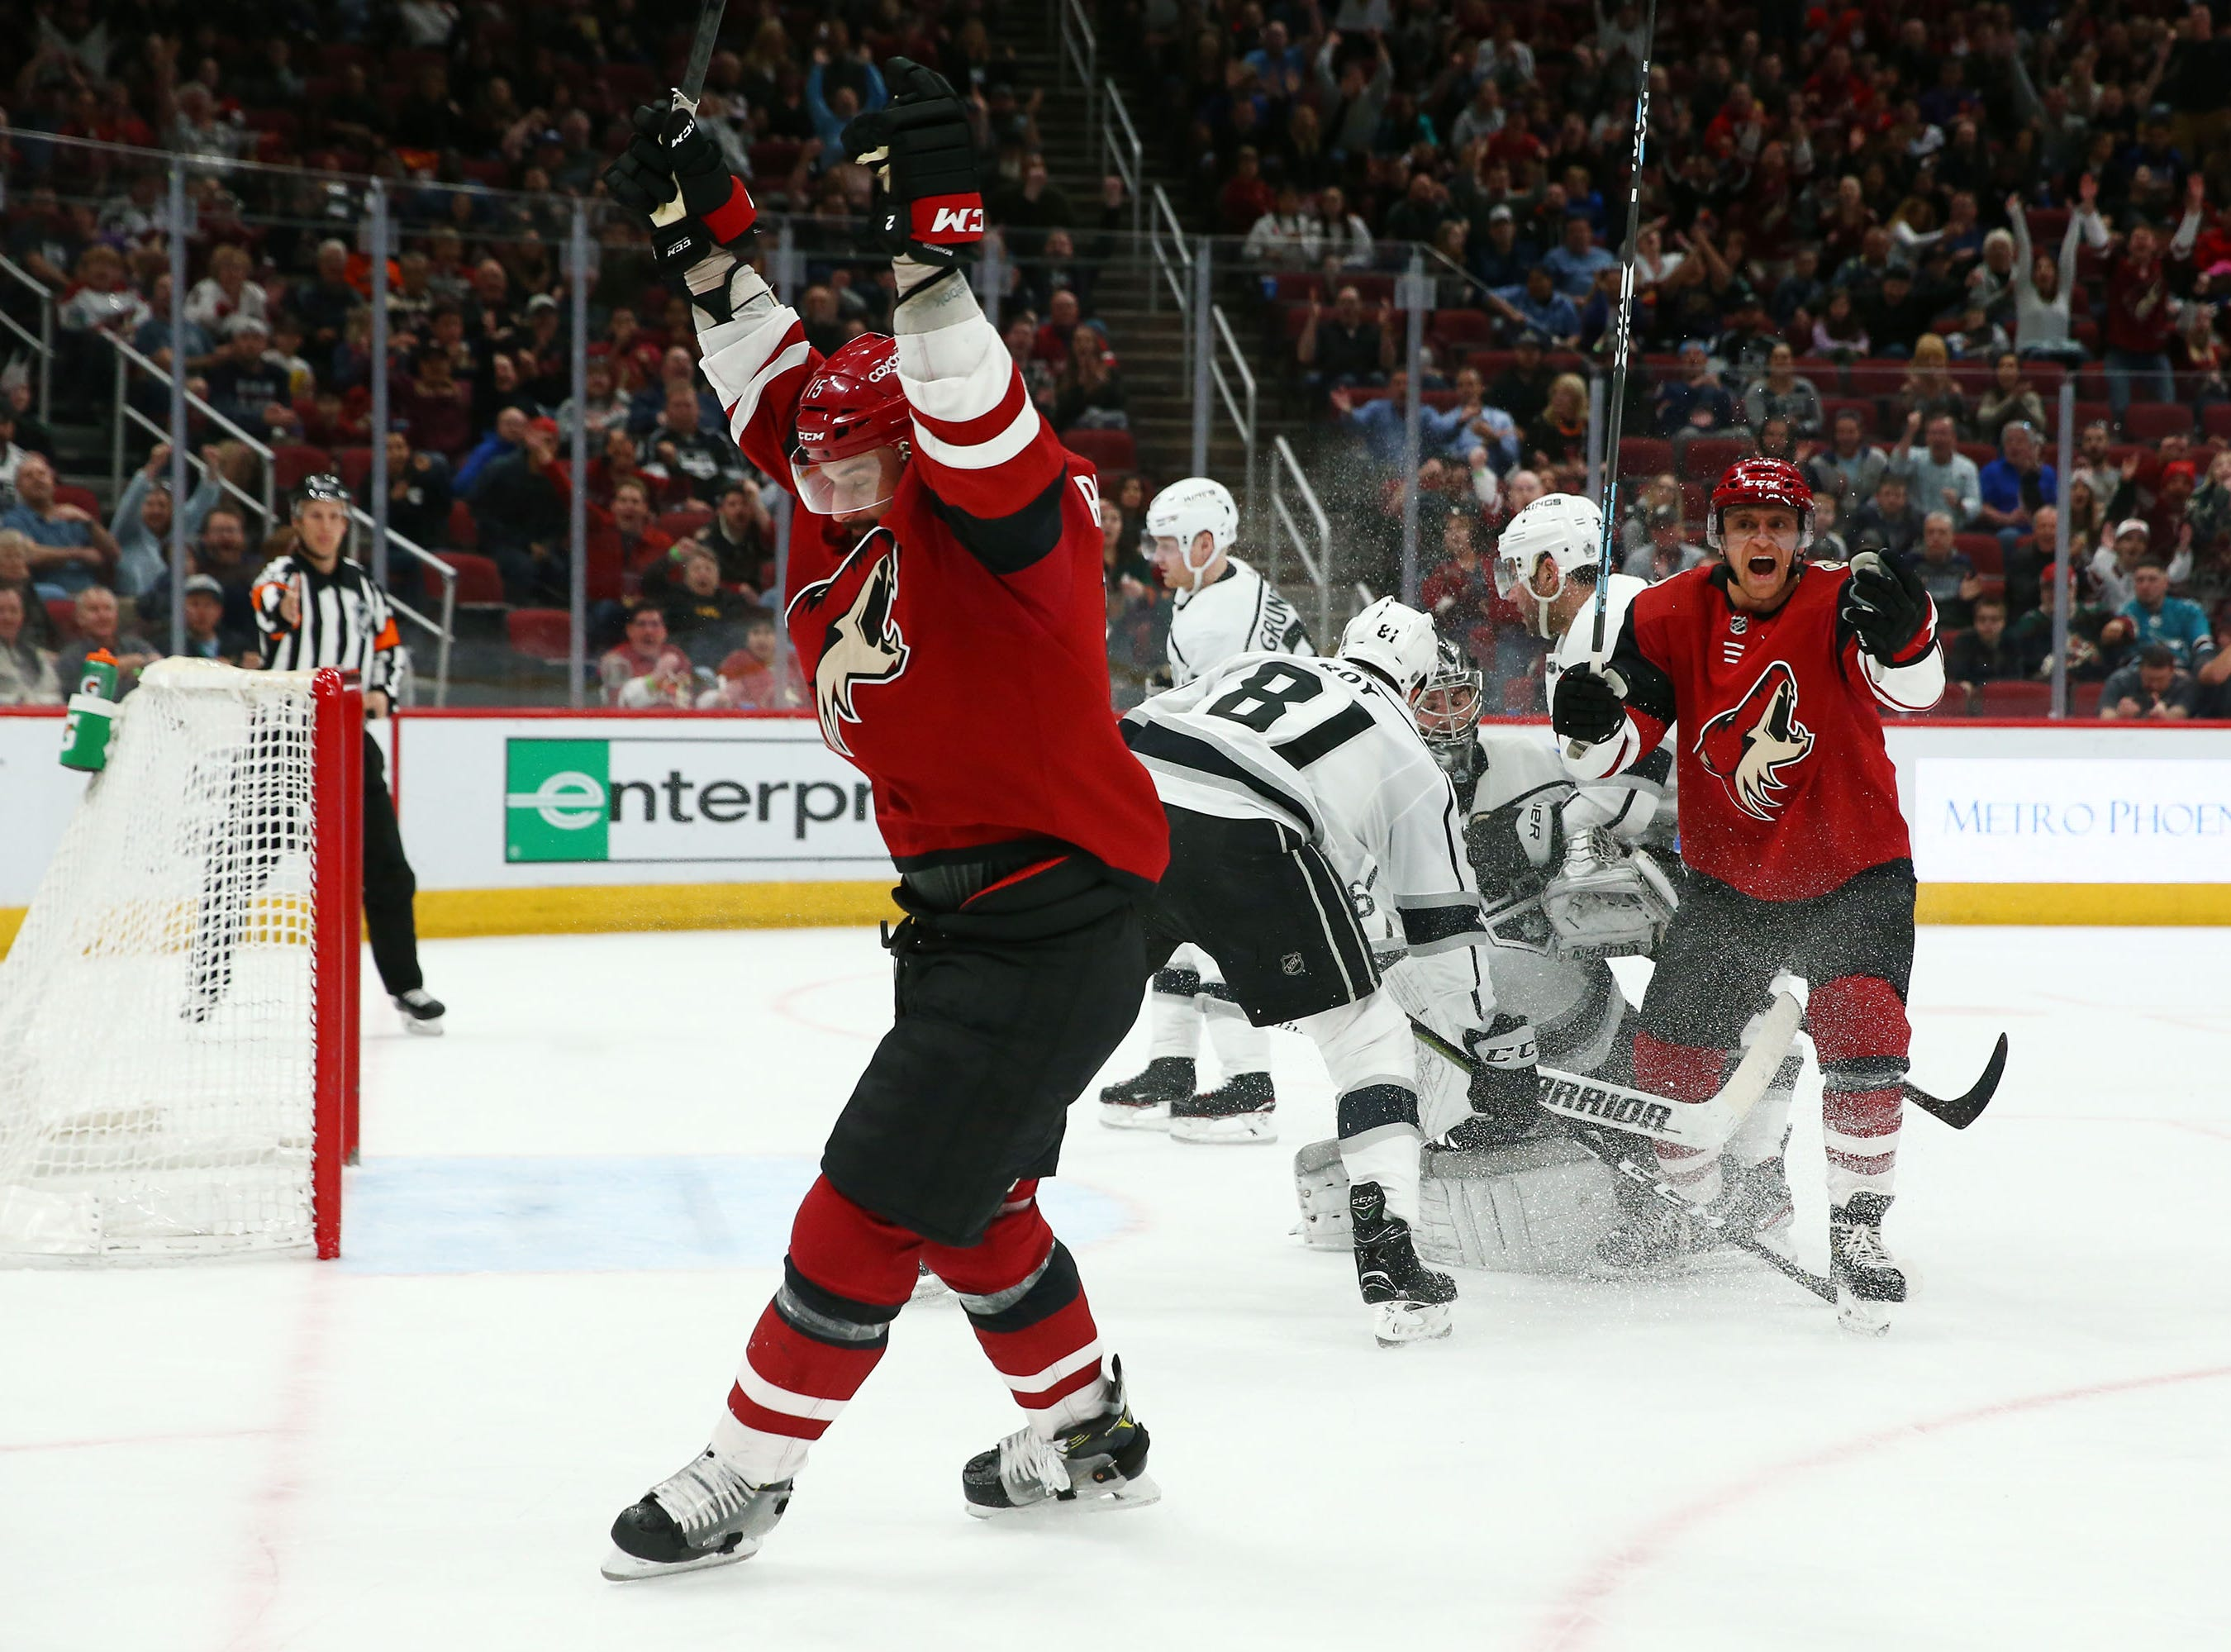 Arizona Coyotes center Brad Richardson (15) celebrates his goal against the Los Angeles Kings in the second period on Apr. 2, 2019 at Gila River Arena in Glendale, Ariz.